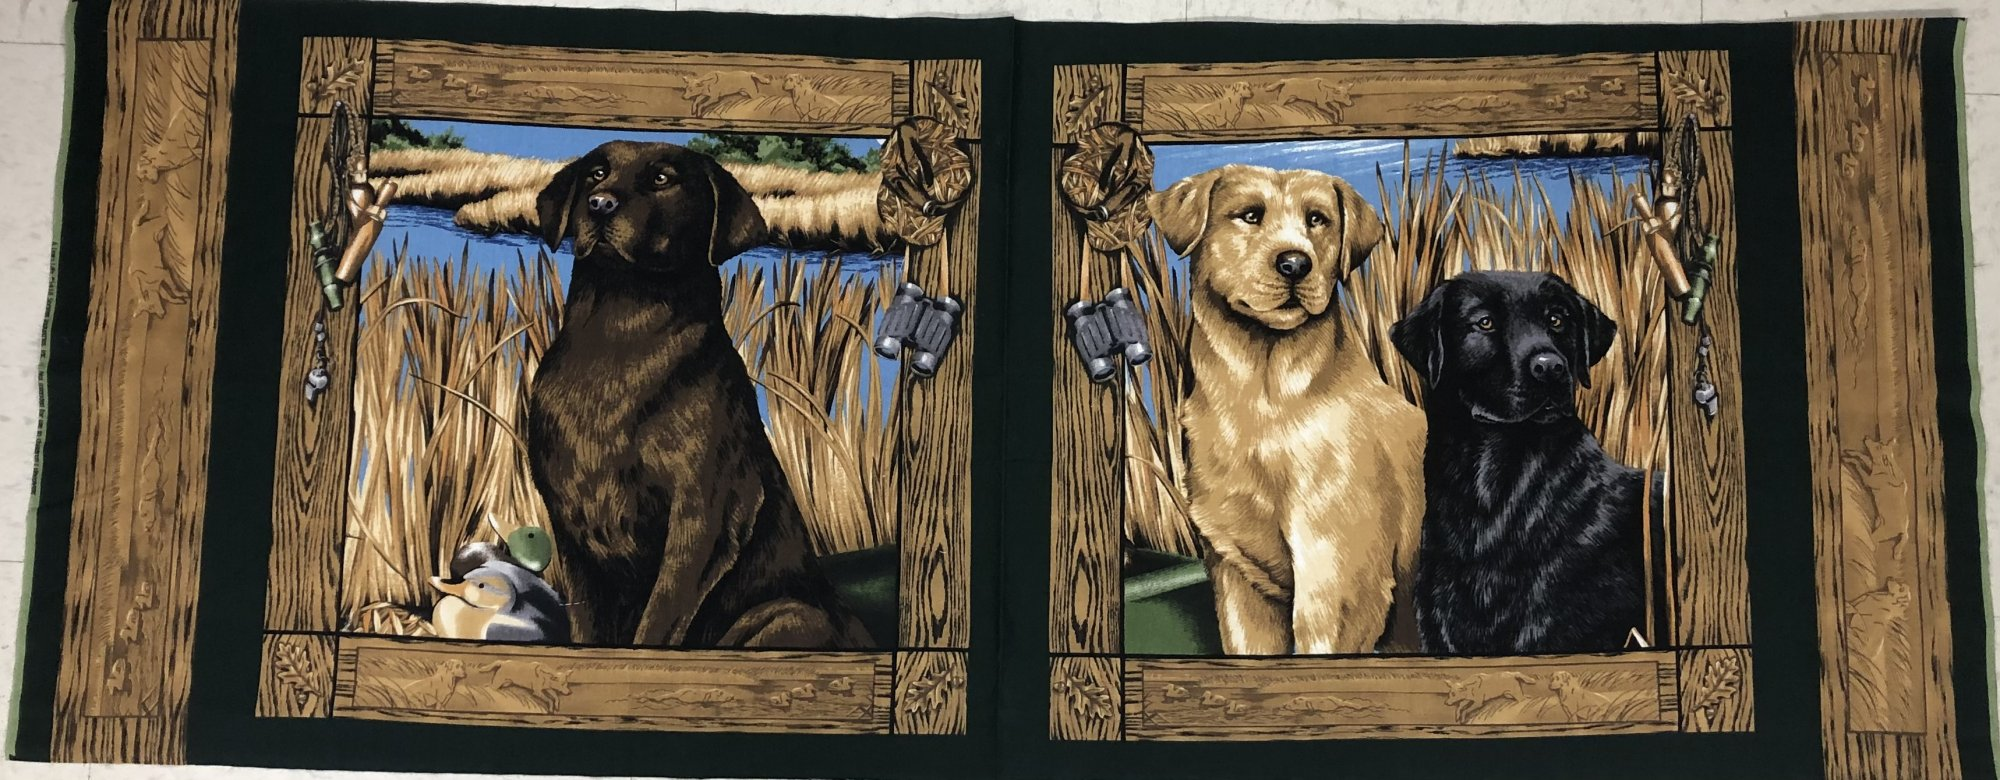 Springs Industries - A Dog's Life - Retriever / Hunting Dog - 17.5 Panel